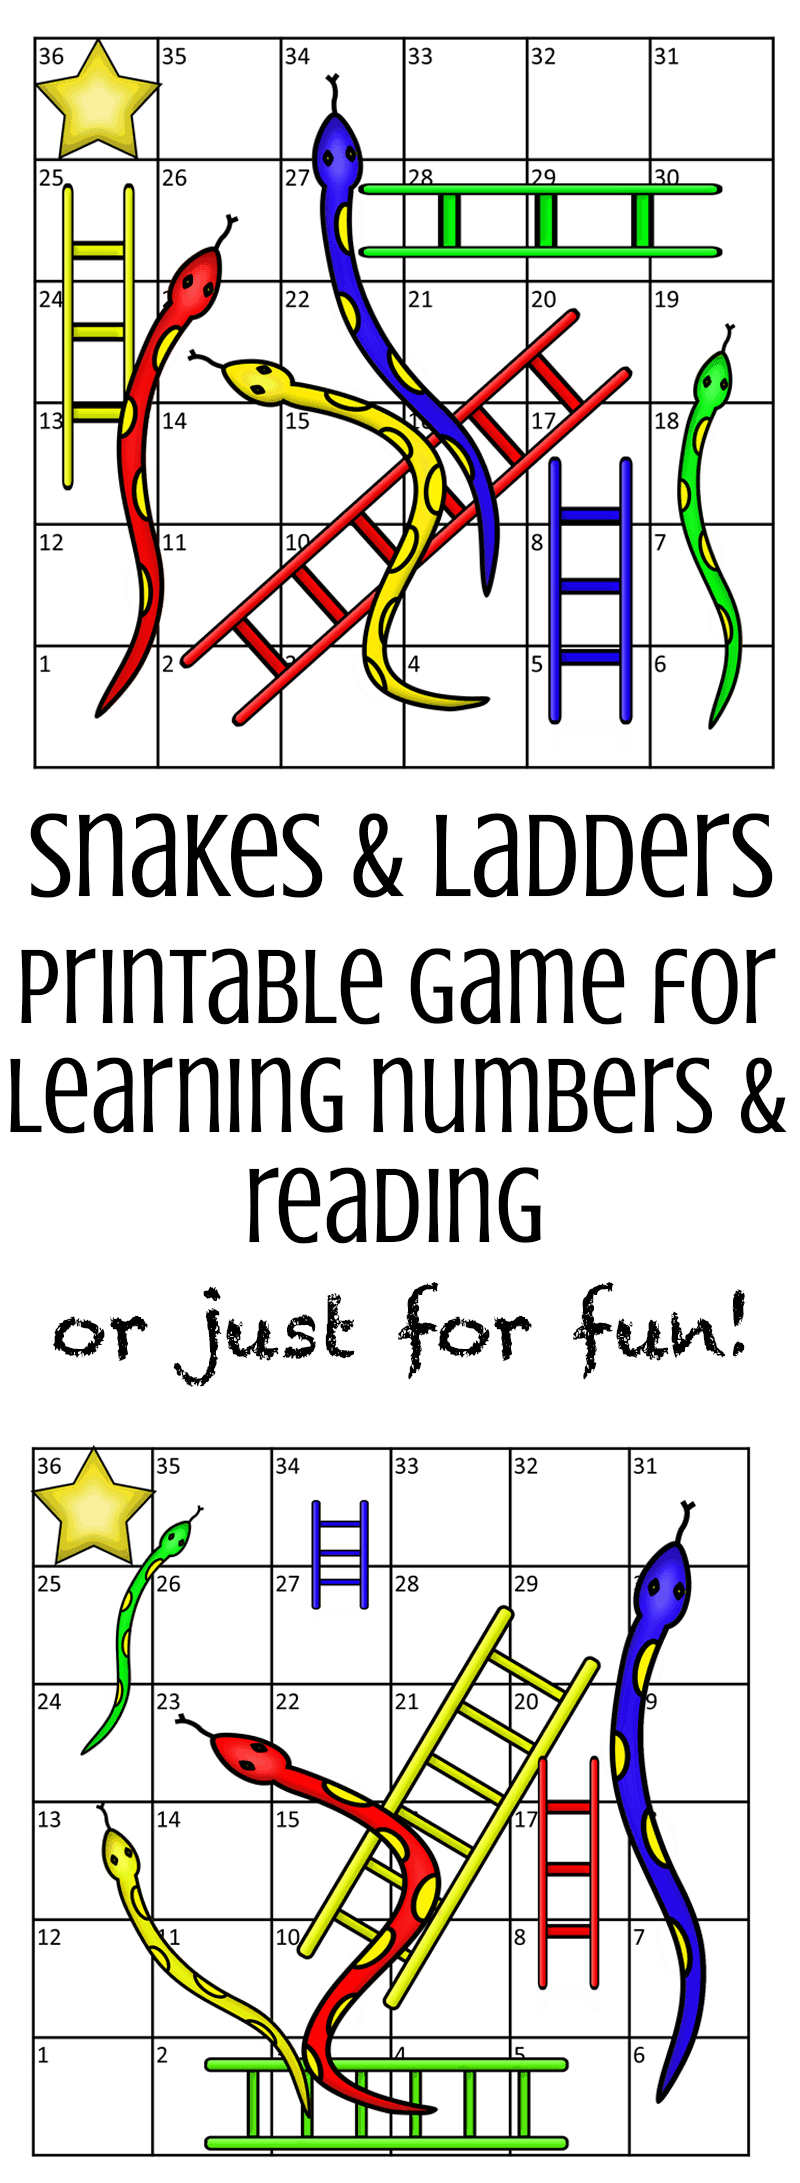 Printable Snakes & Ladders Game